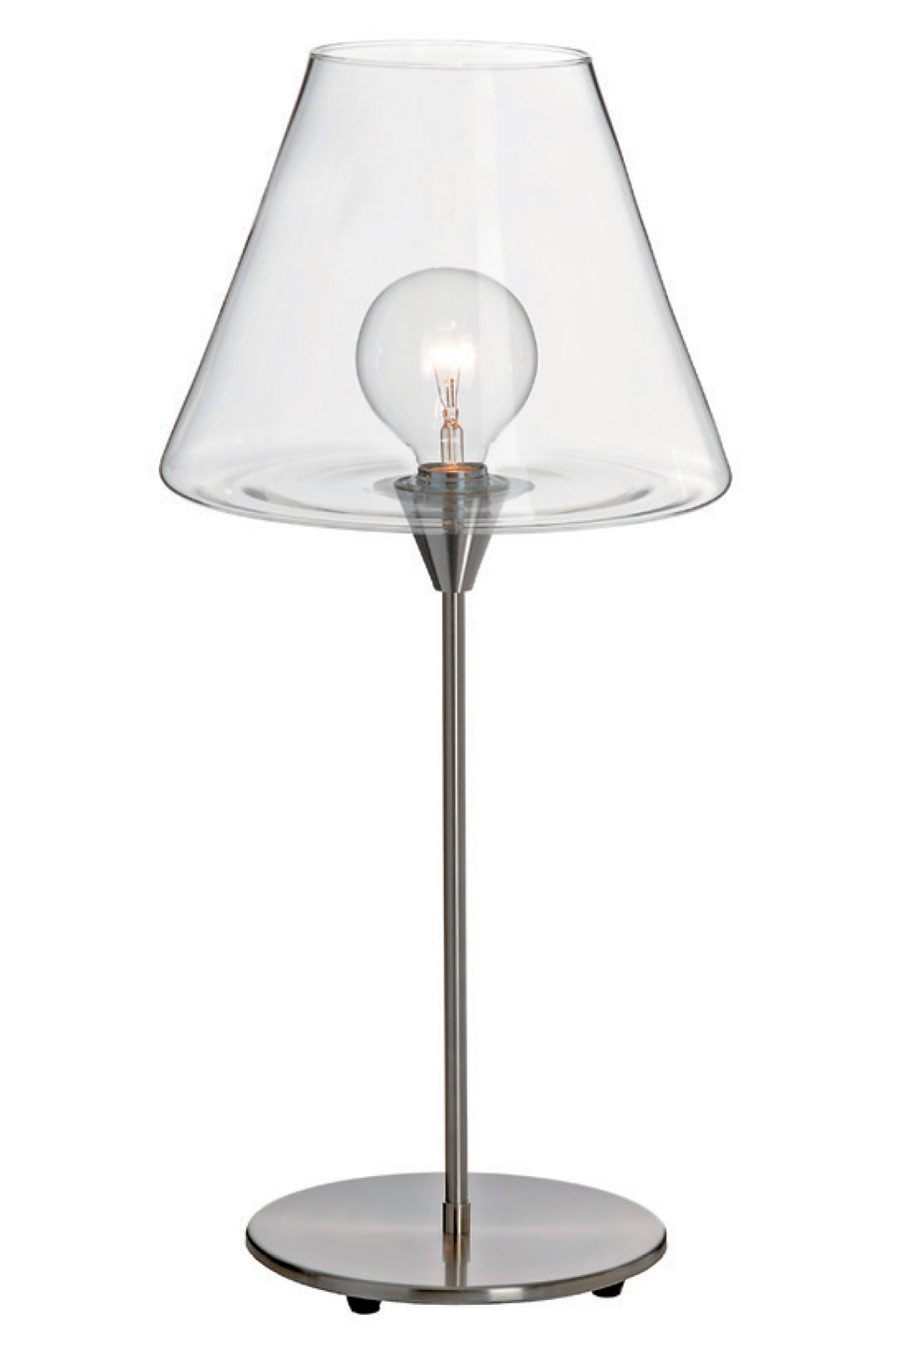 Designer Table Lamp With Clear Glass